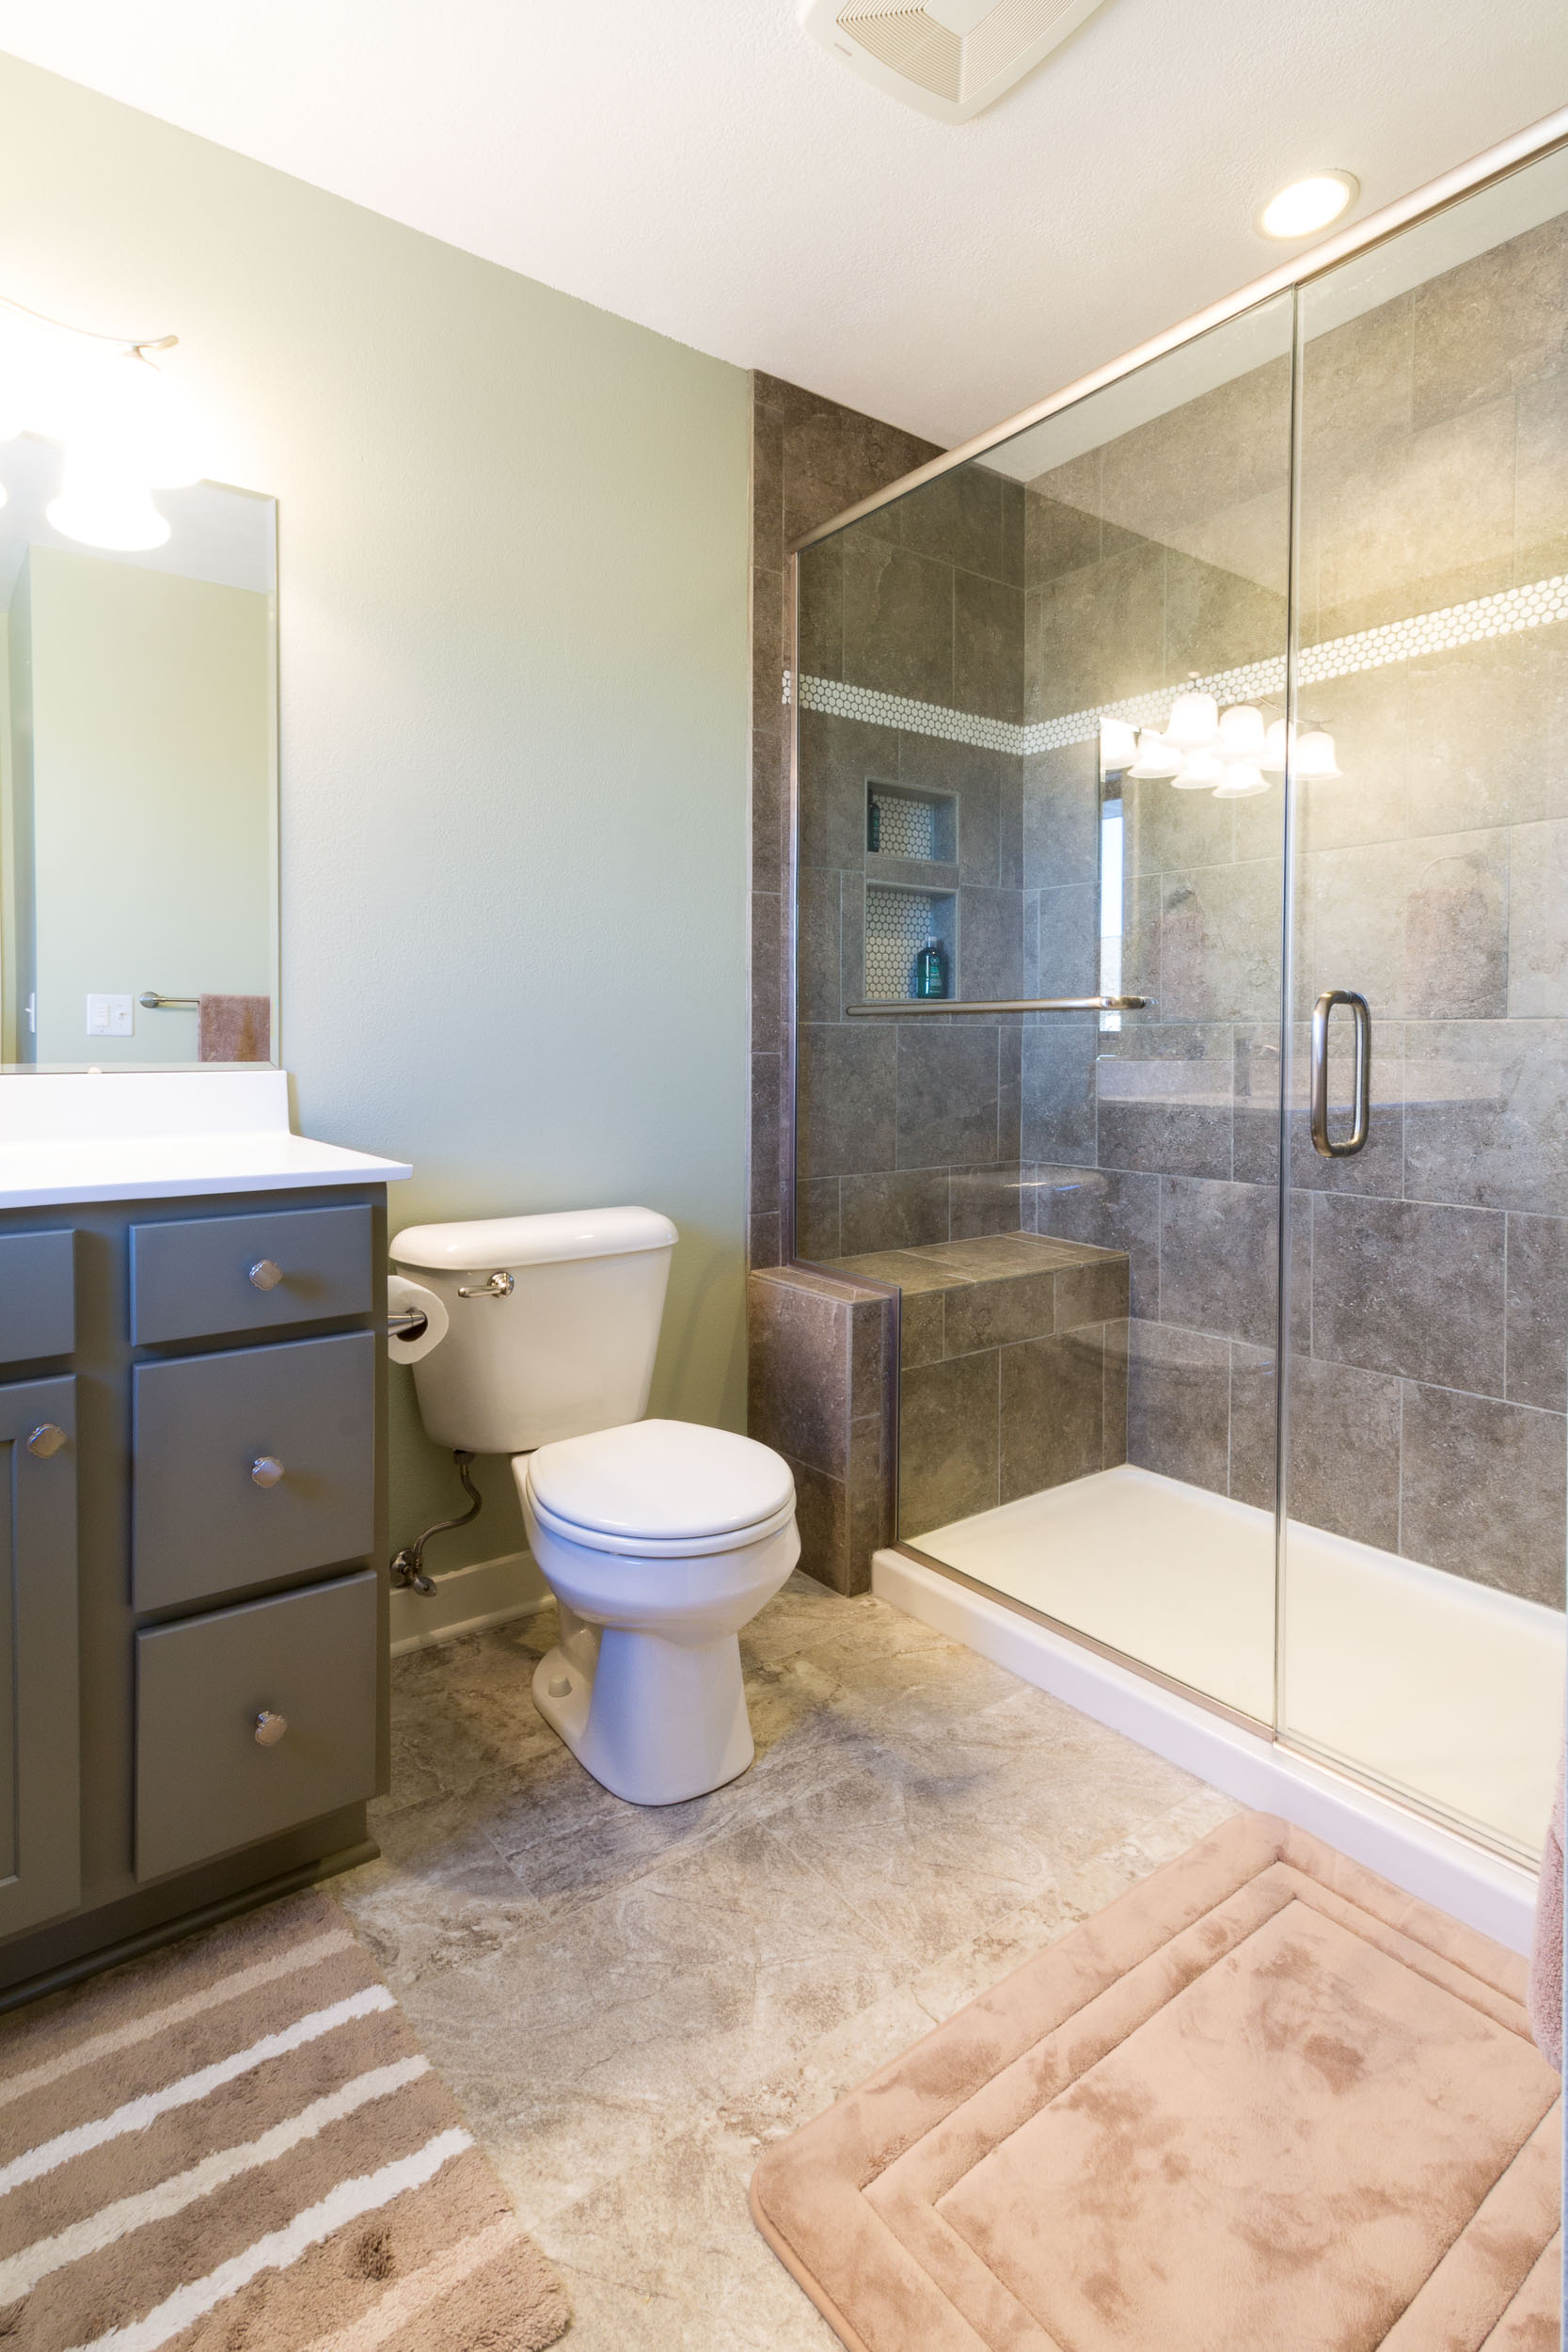 - A perfect strategy for bathroom remodeling design can be to convert the bathtub to a shower.